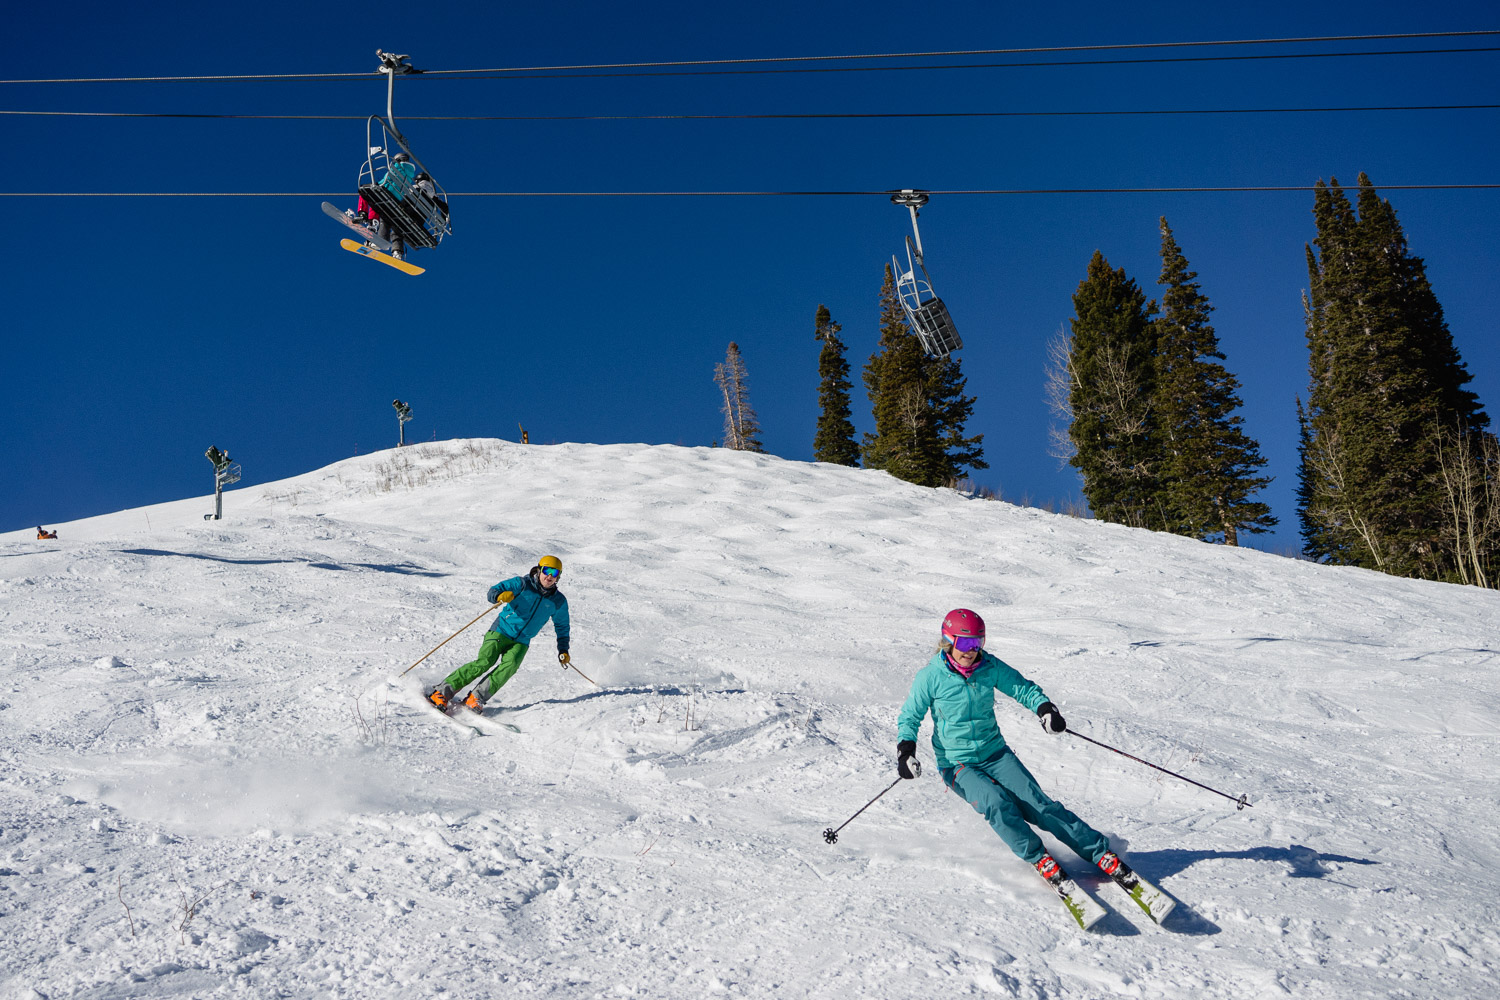 couple skiing under chairlift utah ski resort